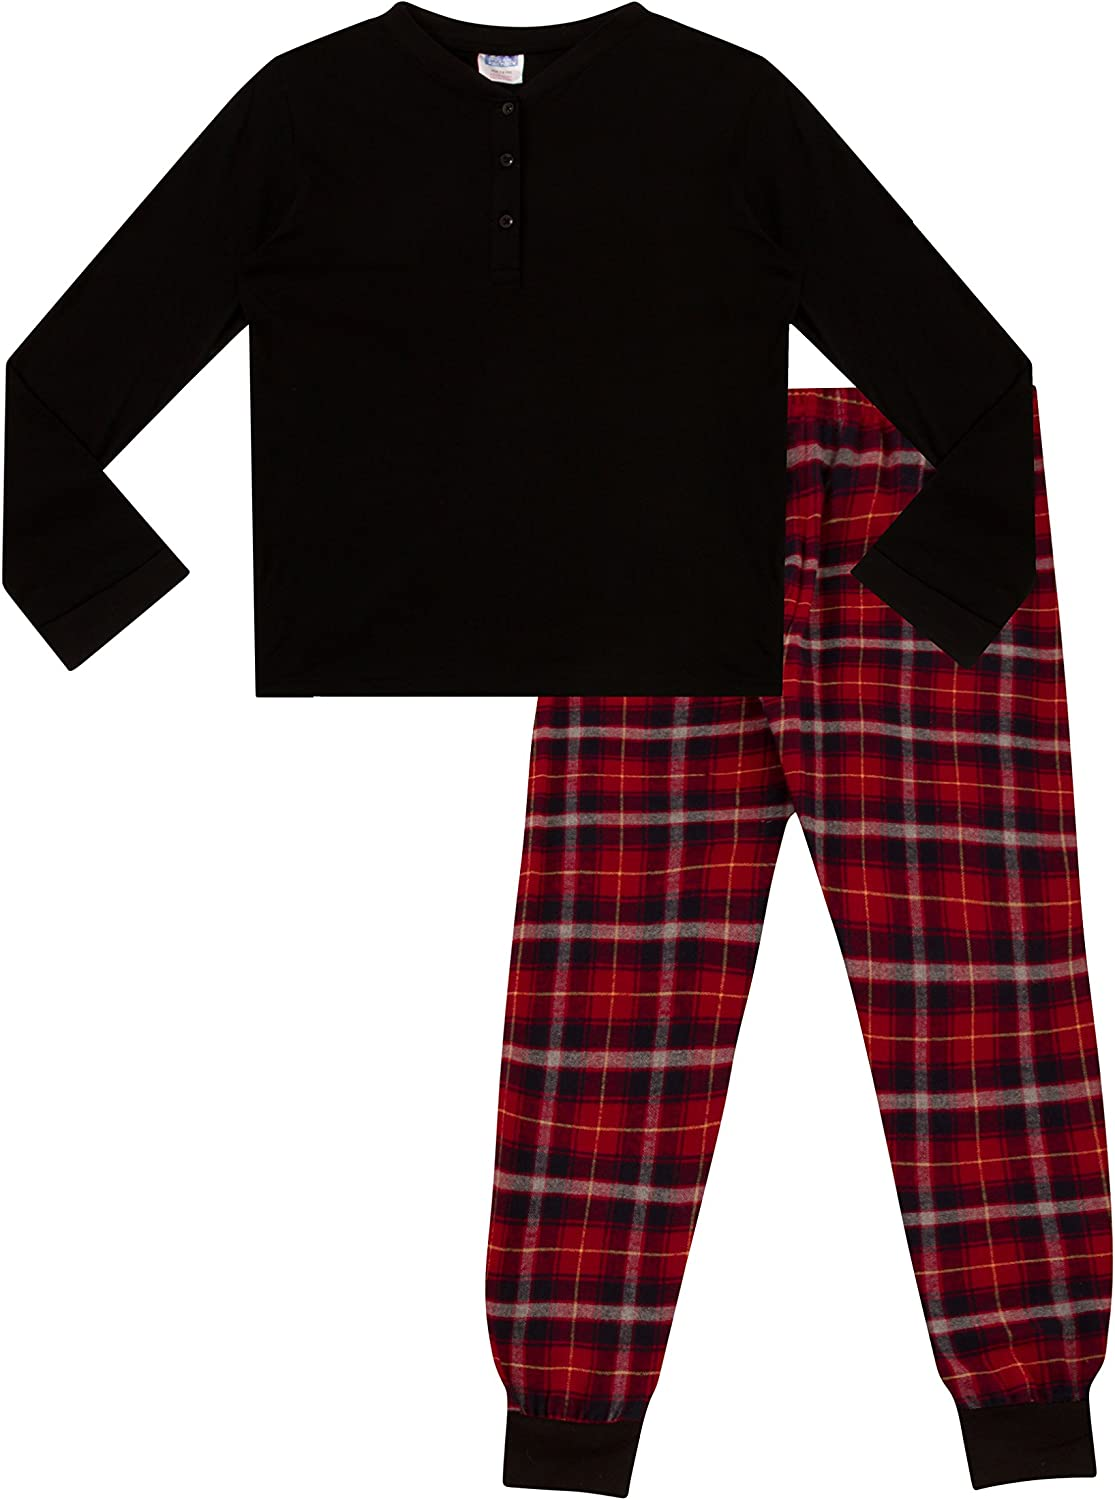 ThePyjamaFactory Childrens Girls Pyjamas Plain Long Sleeve Top /& Woven Check Printed Bottom